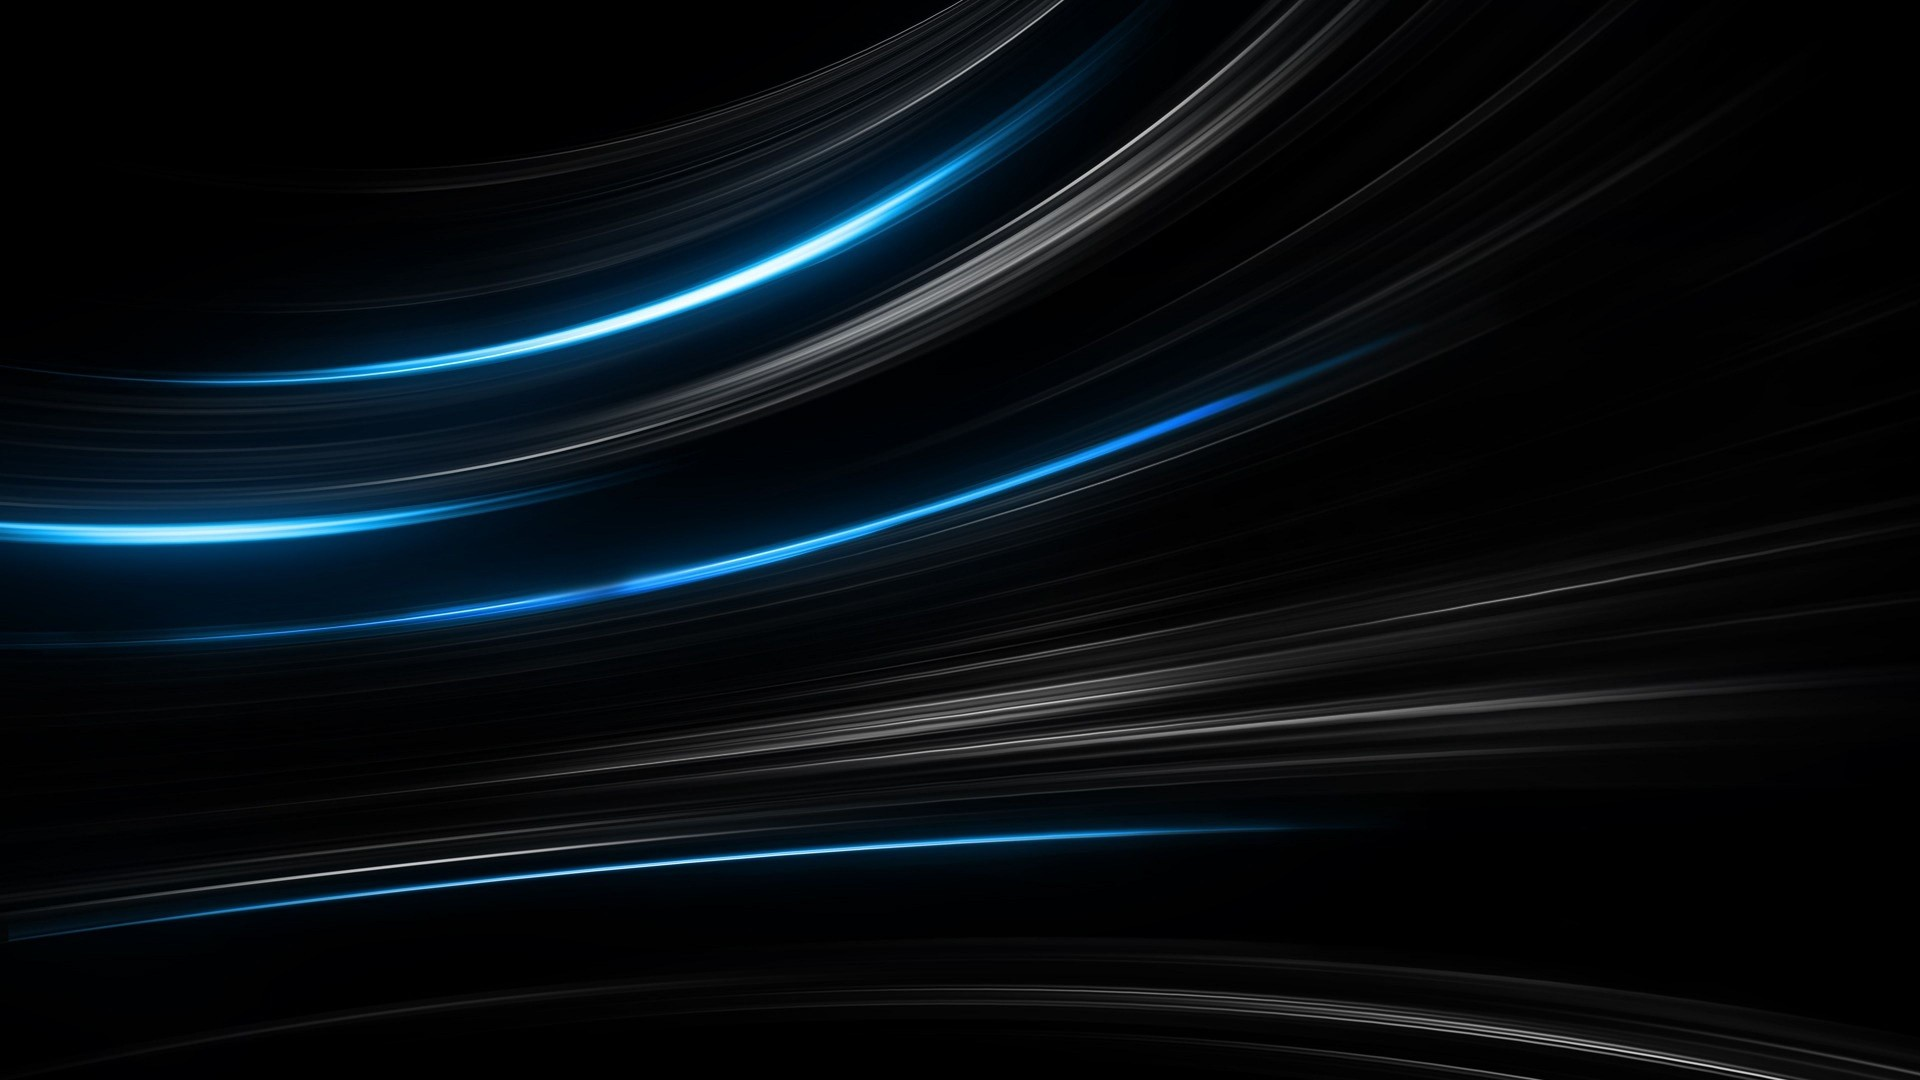 Wallpaper Lines Black Blue 4k Os 15378 Page 2